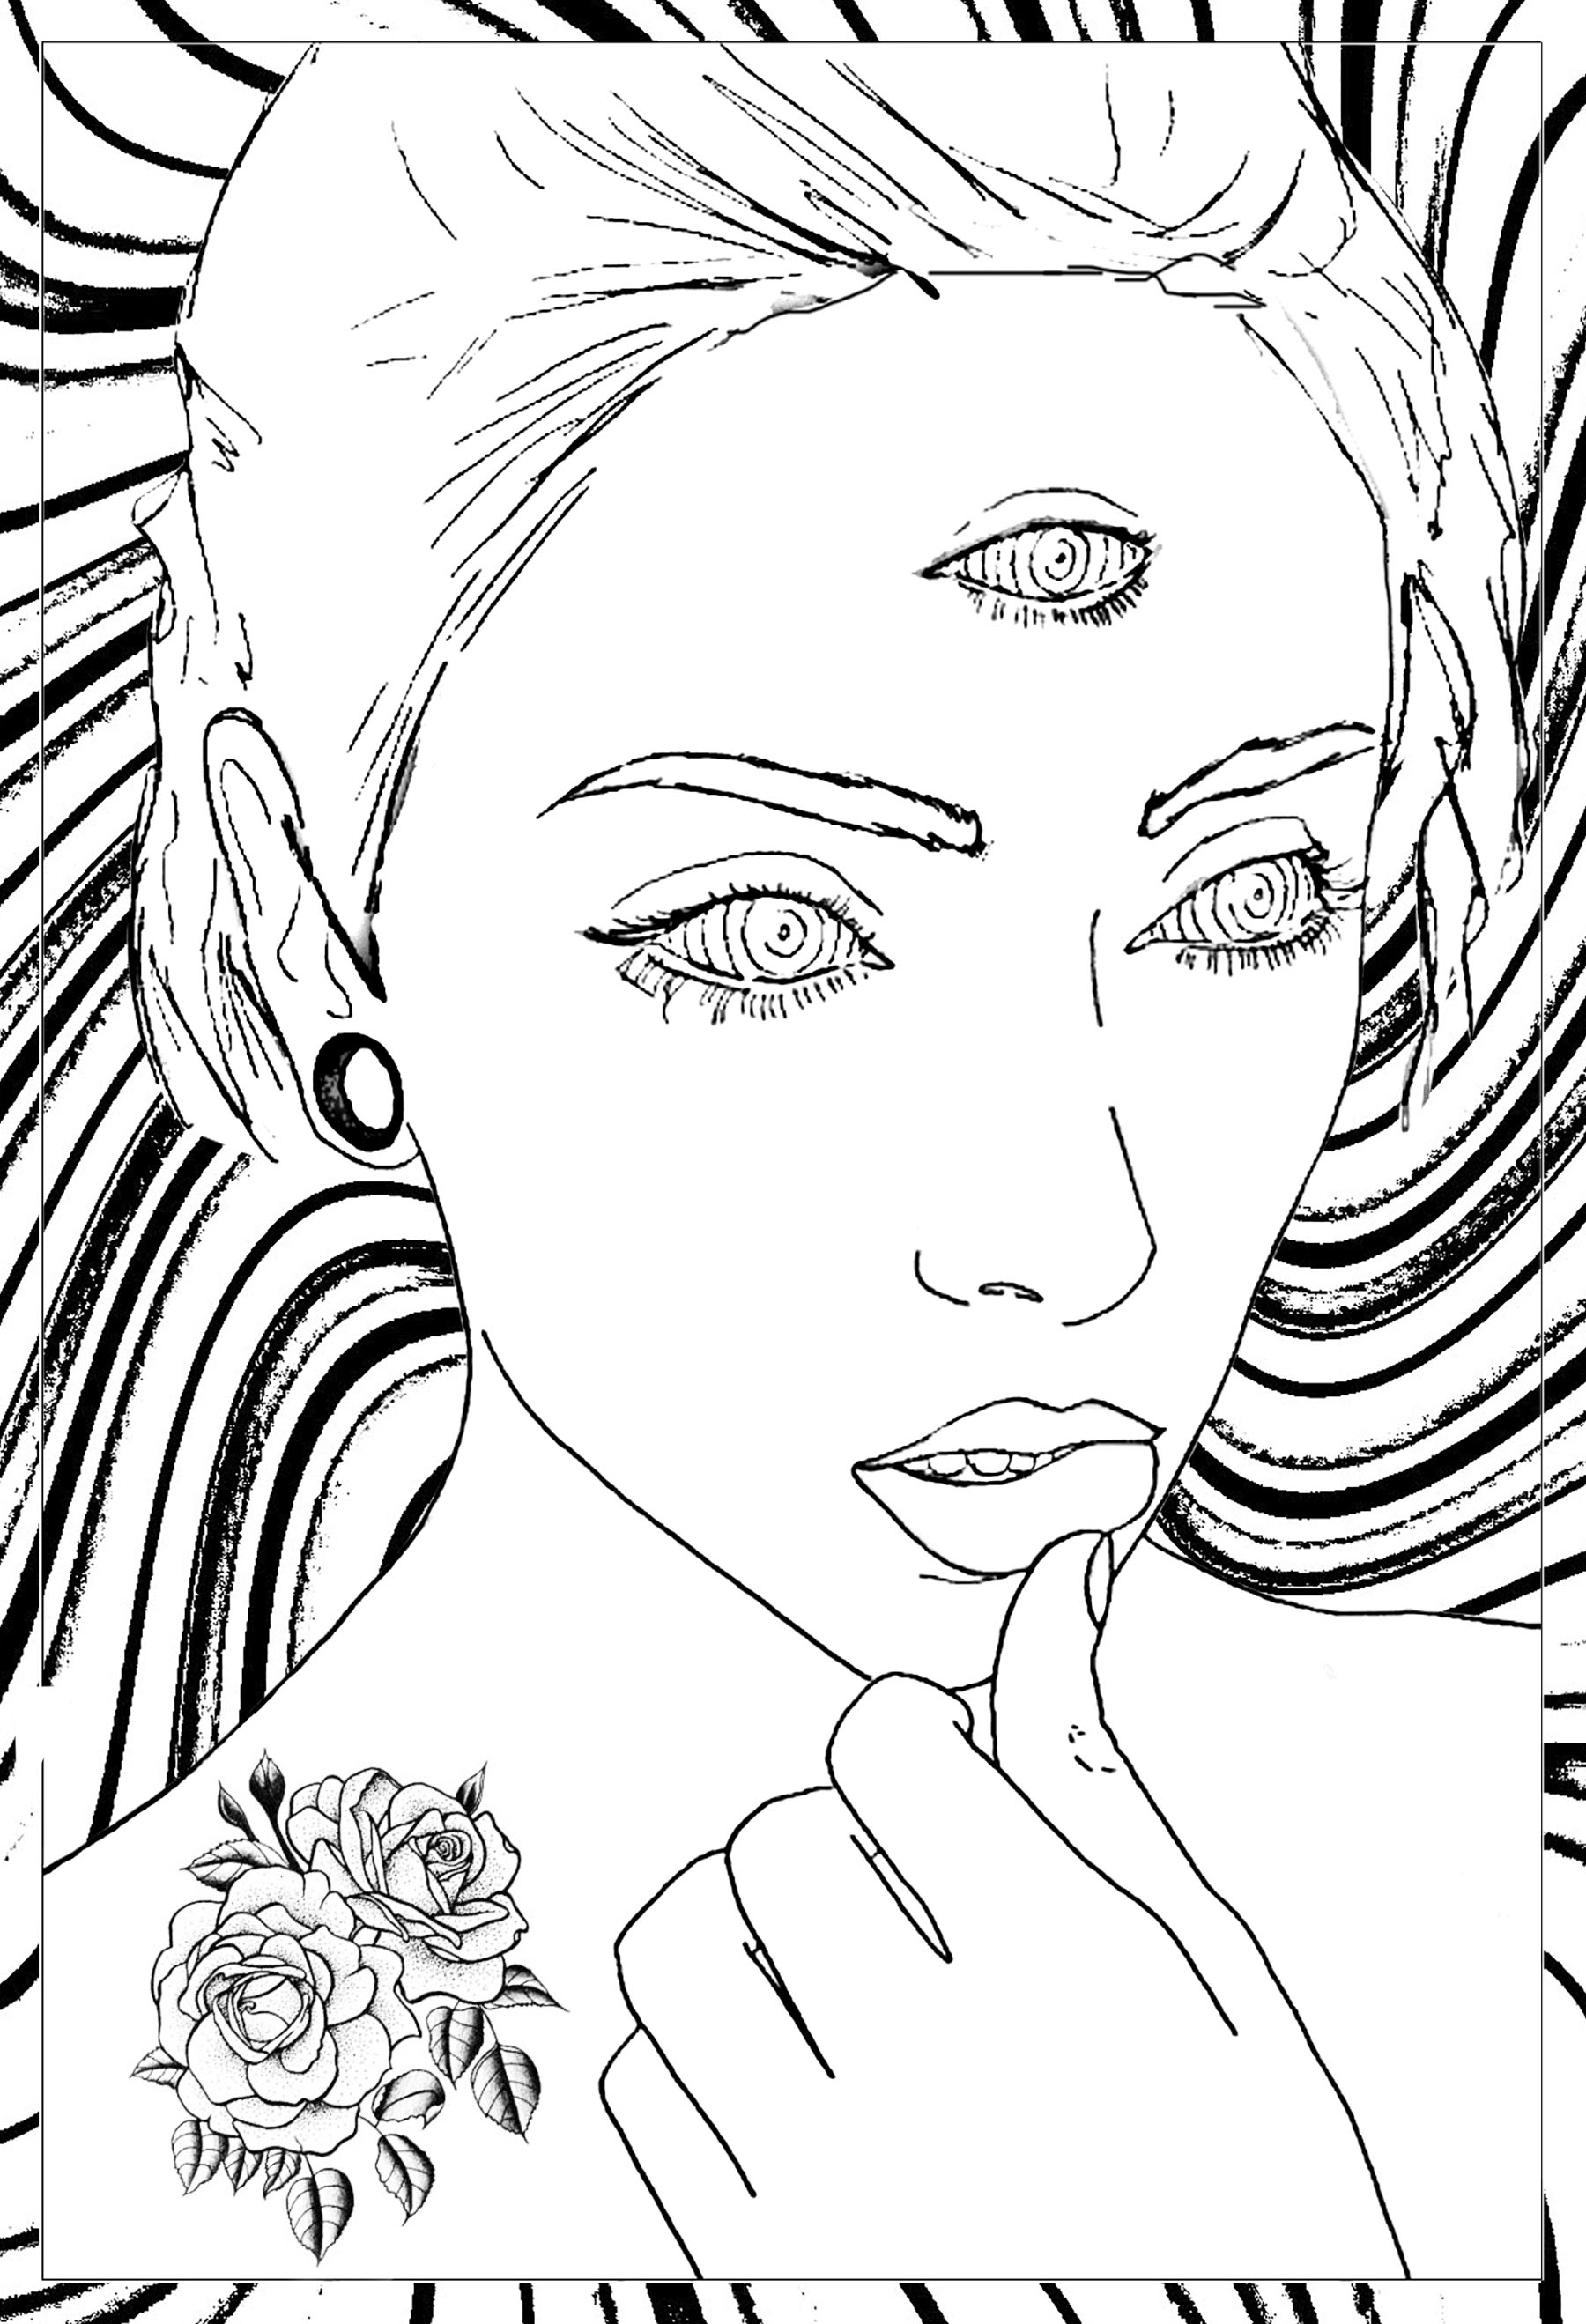 Thoughtful Woman Psychedelic Coloring Pages For Adults Justcolor